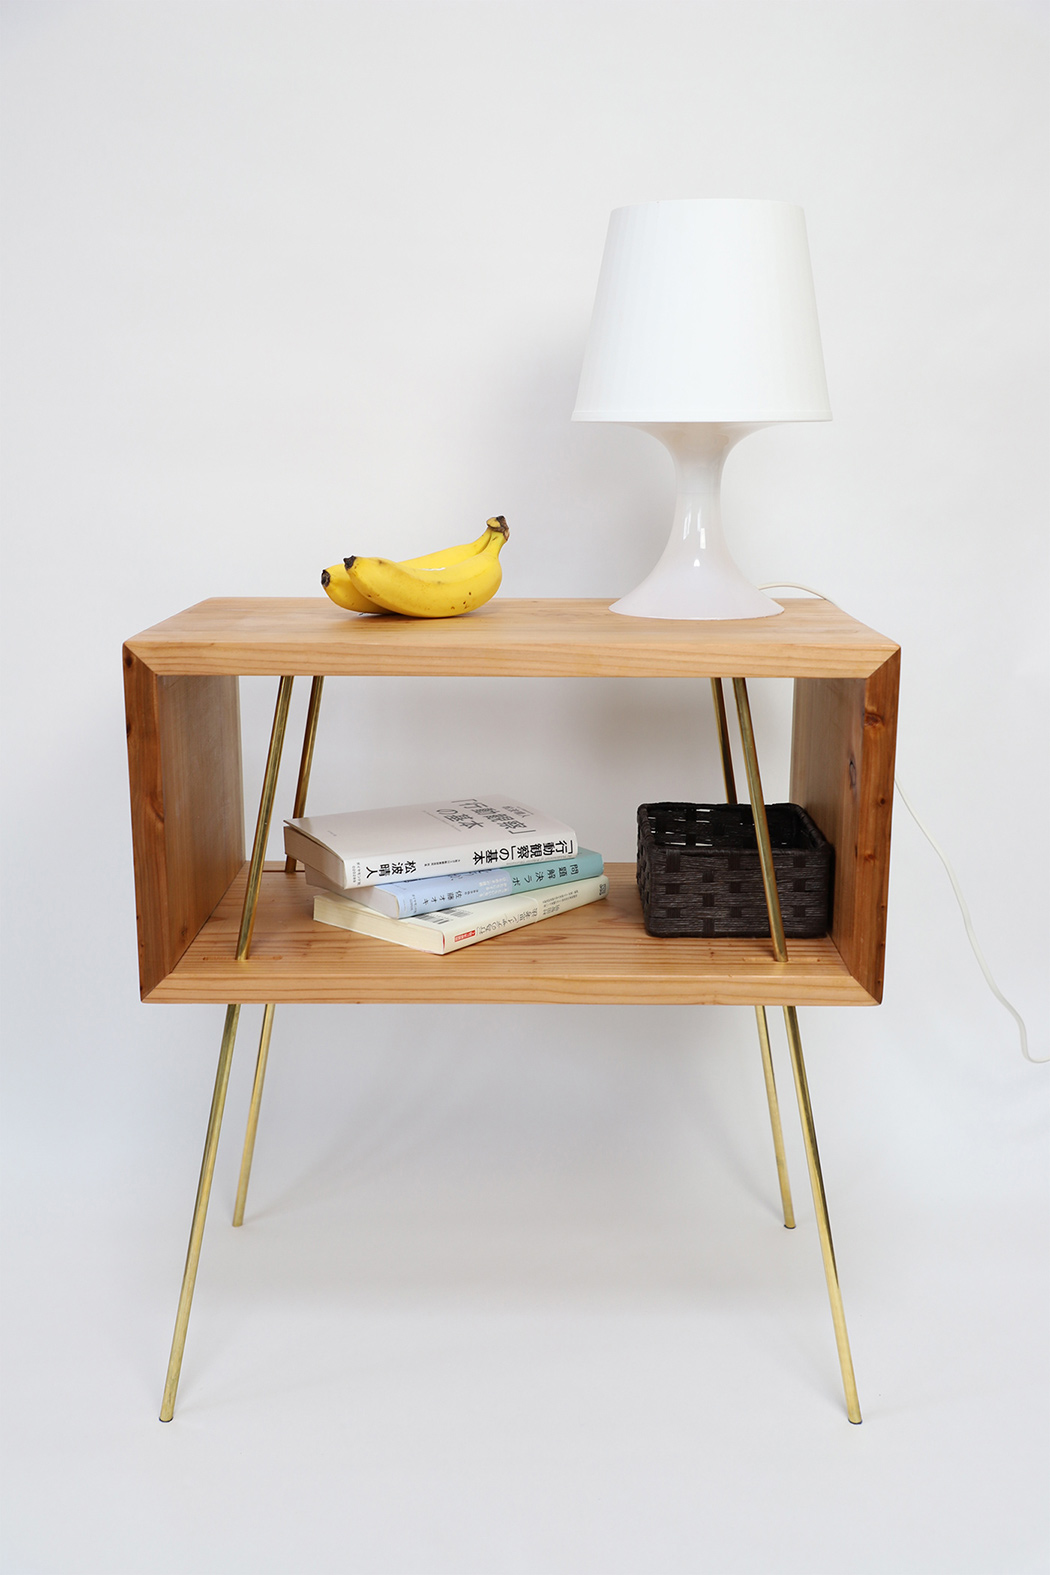 Thanks to the simplicity of the design and materials used this side table is great for many modern spaces